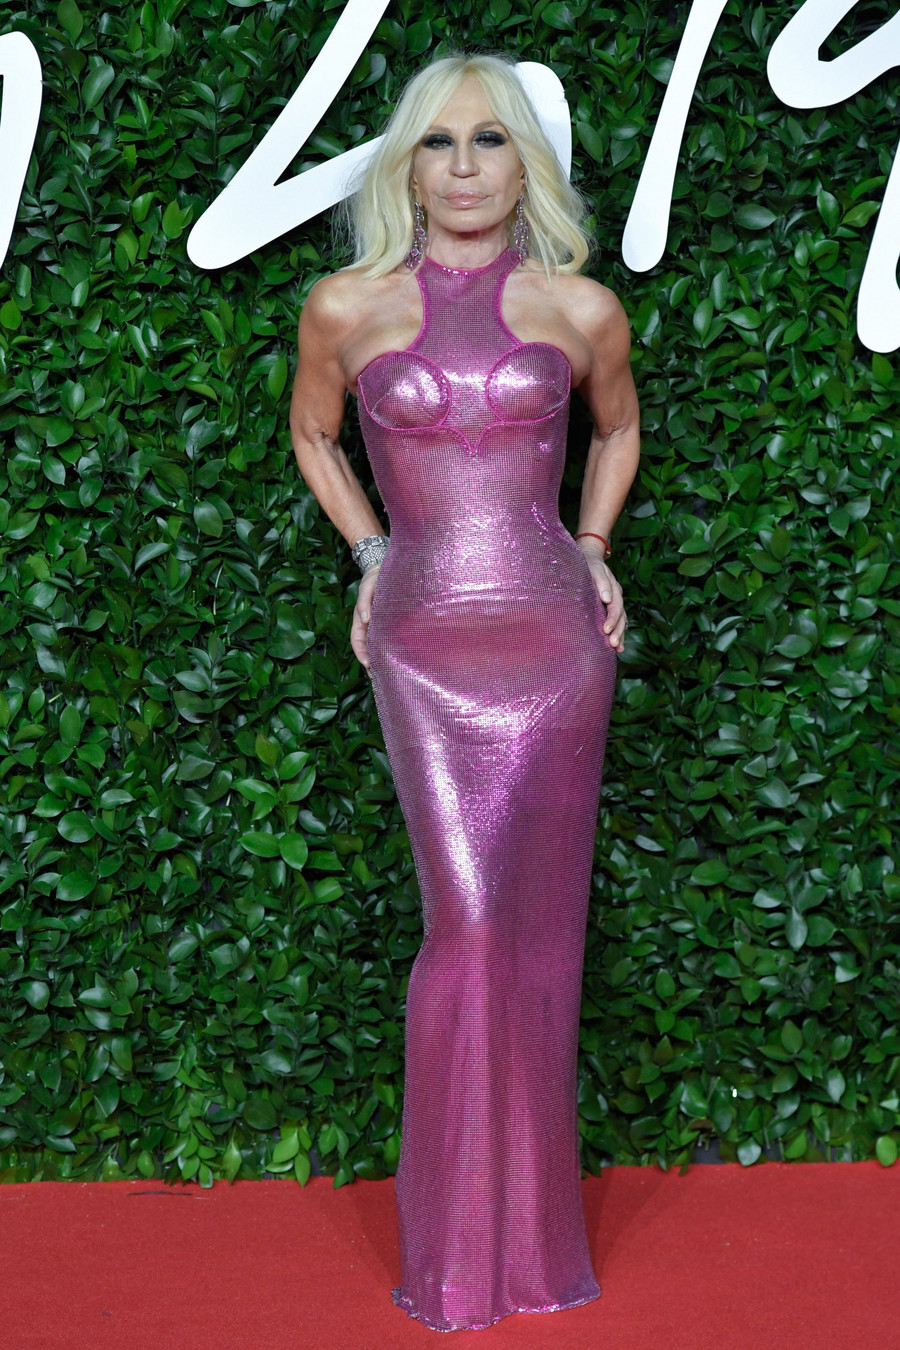 Donatella Versace na Fashion Awards 2019 / Marechal Aurore / ABACA / Abaca / East News